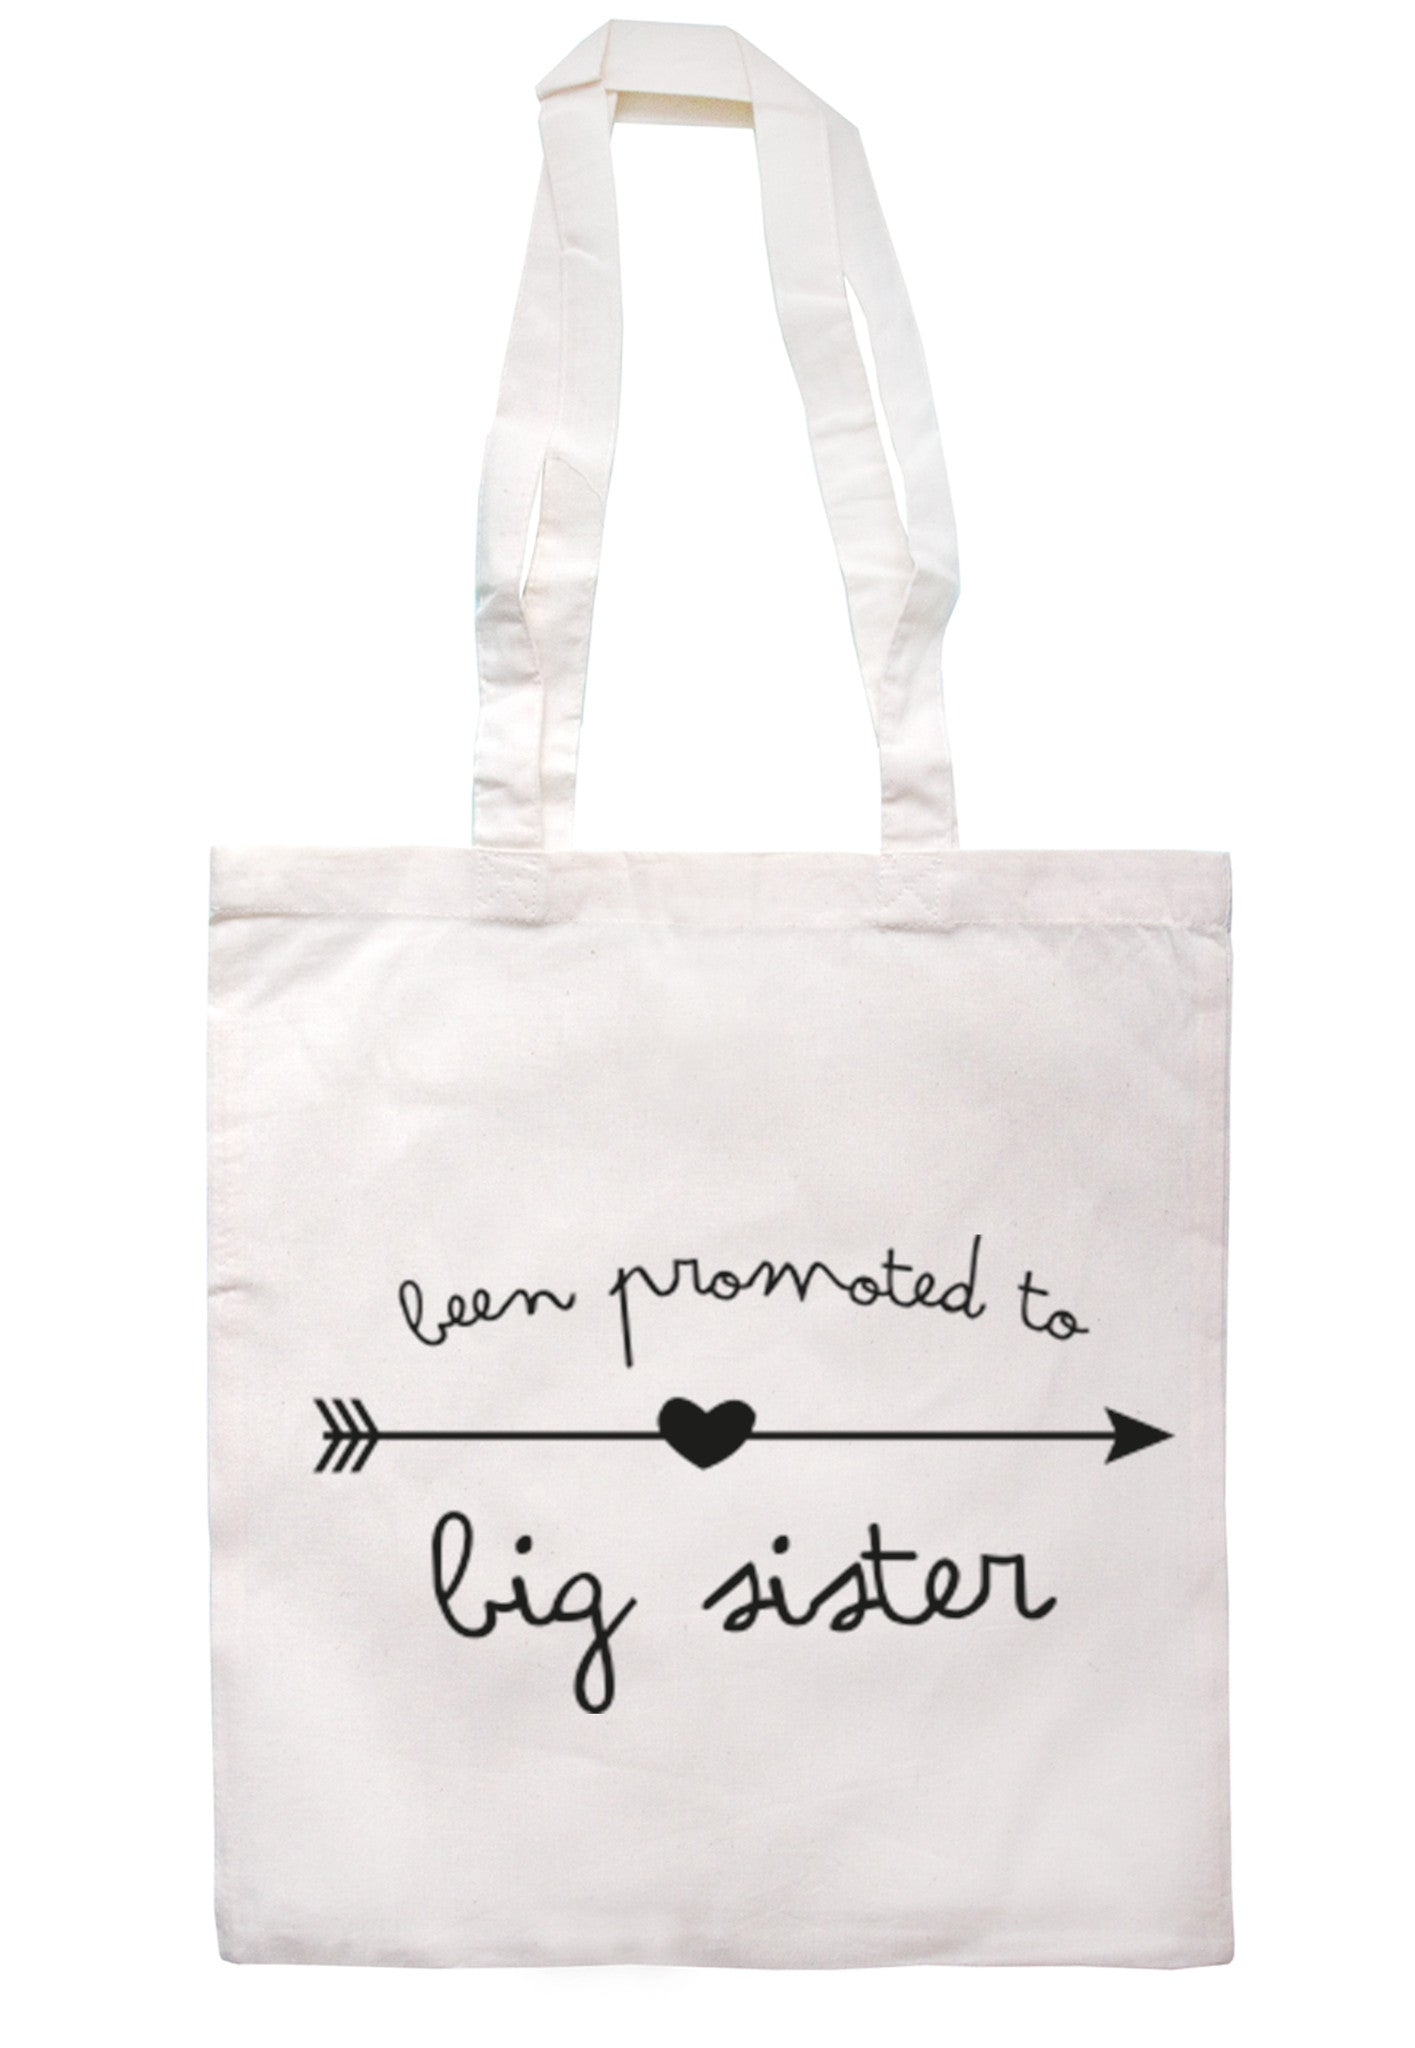 Been Promoted To Big Sister Tote Bag TB0024 - Illustrated Identity Ltd.